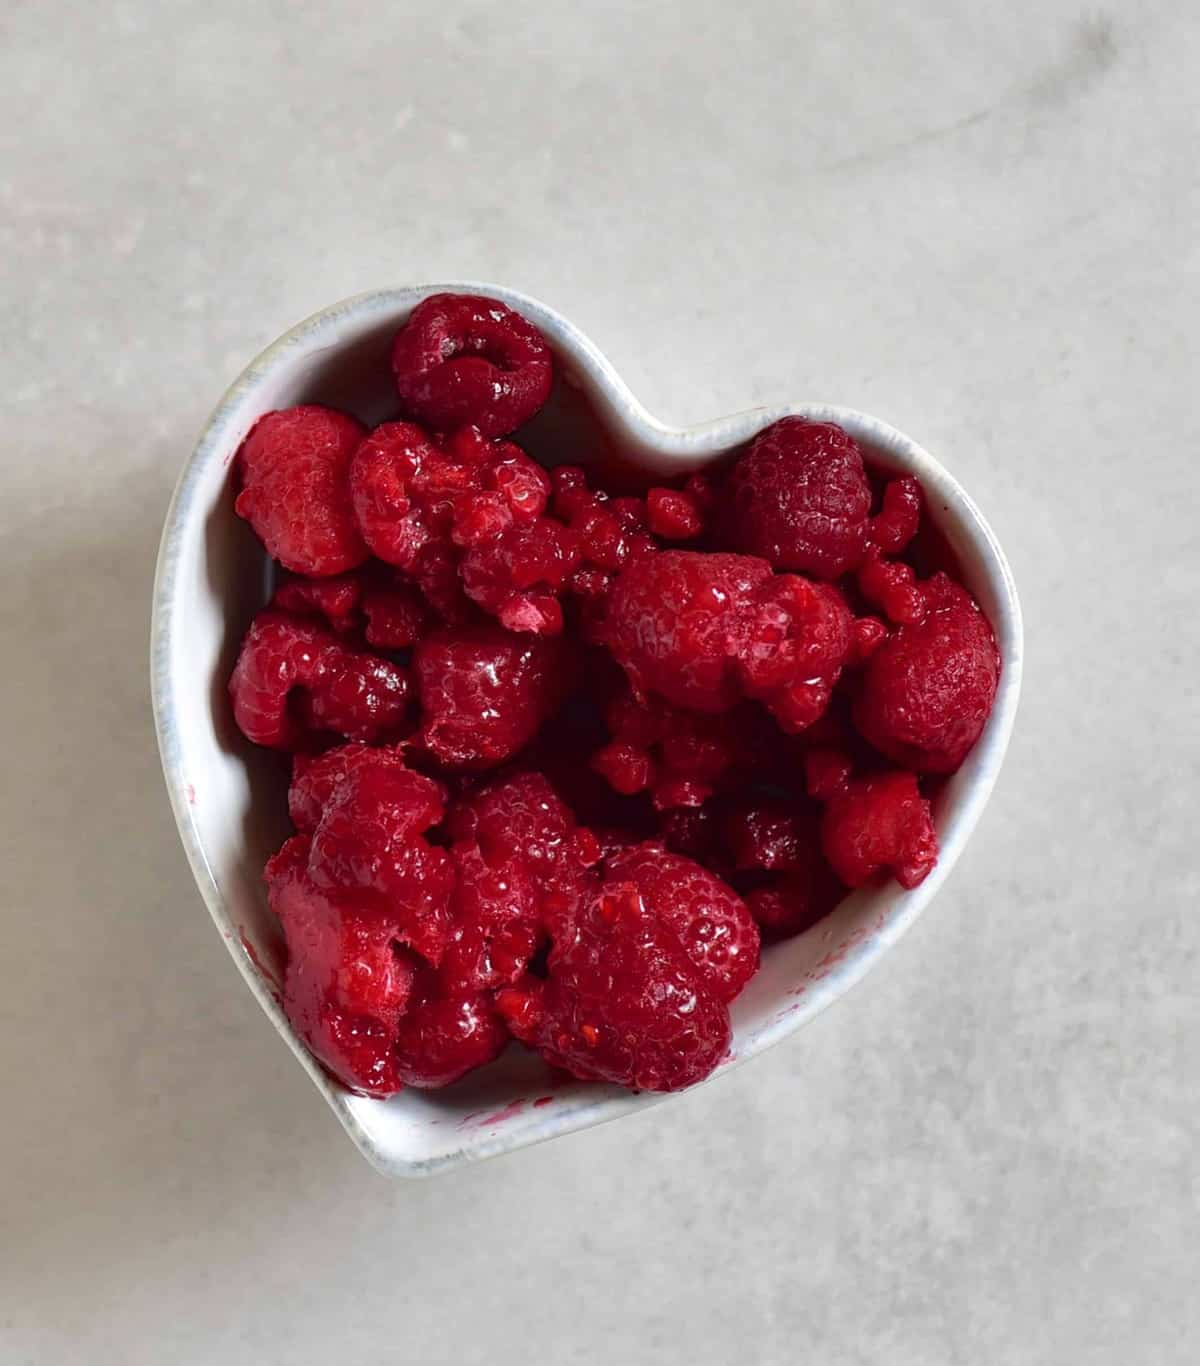 raspberries thawing in small heart-shaped bowl